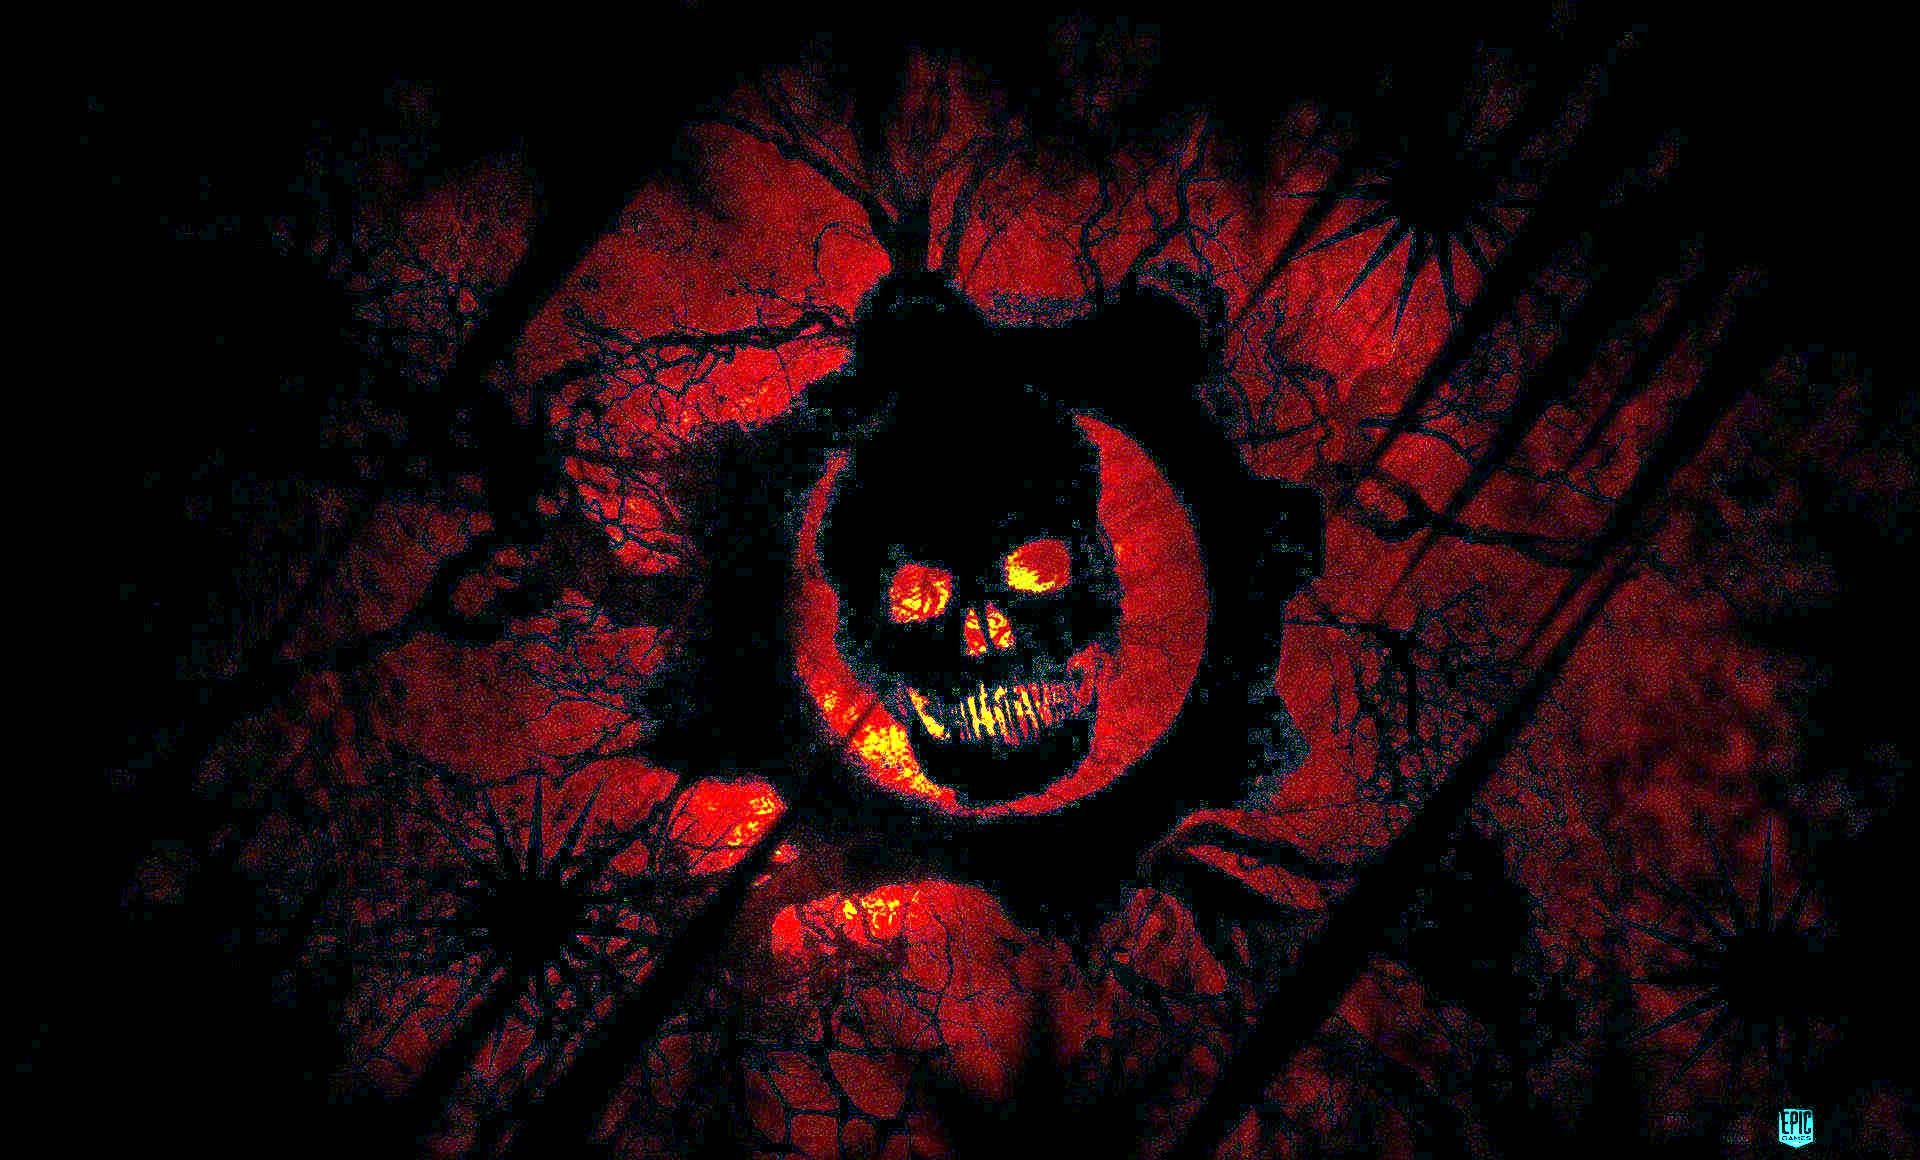 Gears Of War 4 Game Wallpapers Ultra Hd Quality Mejores Fondos